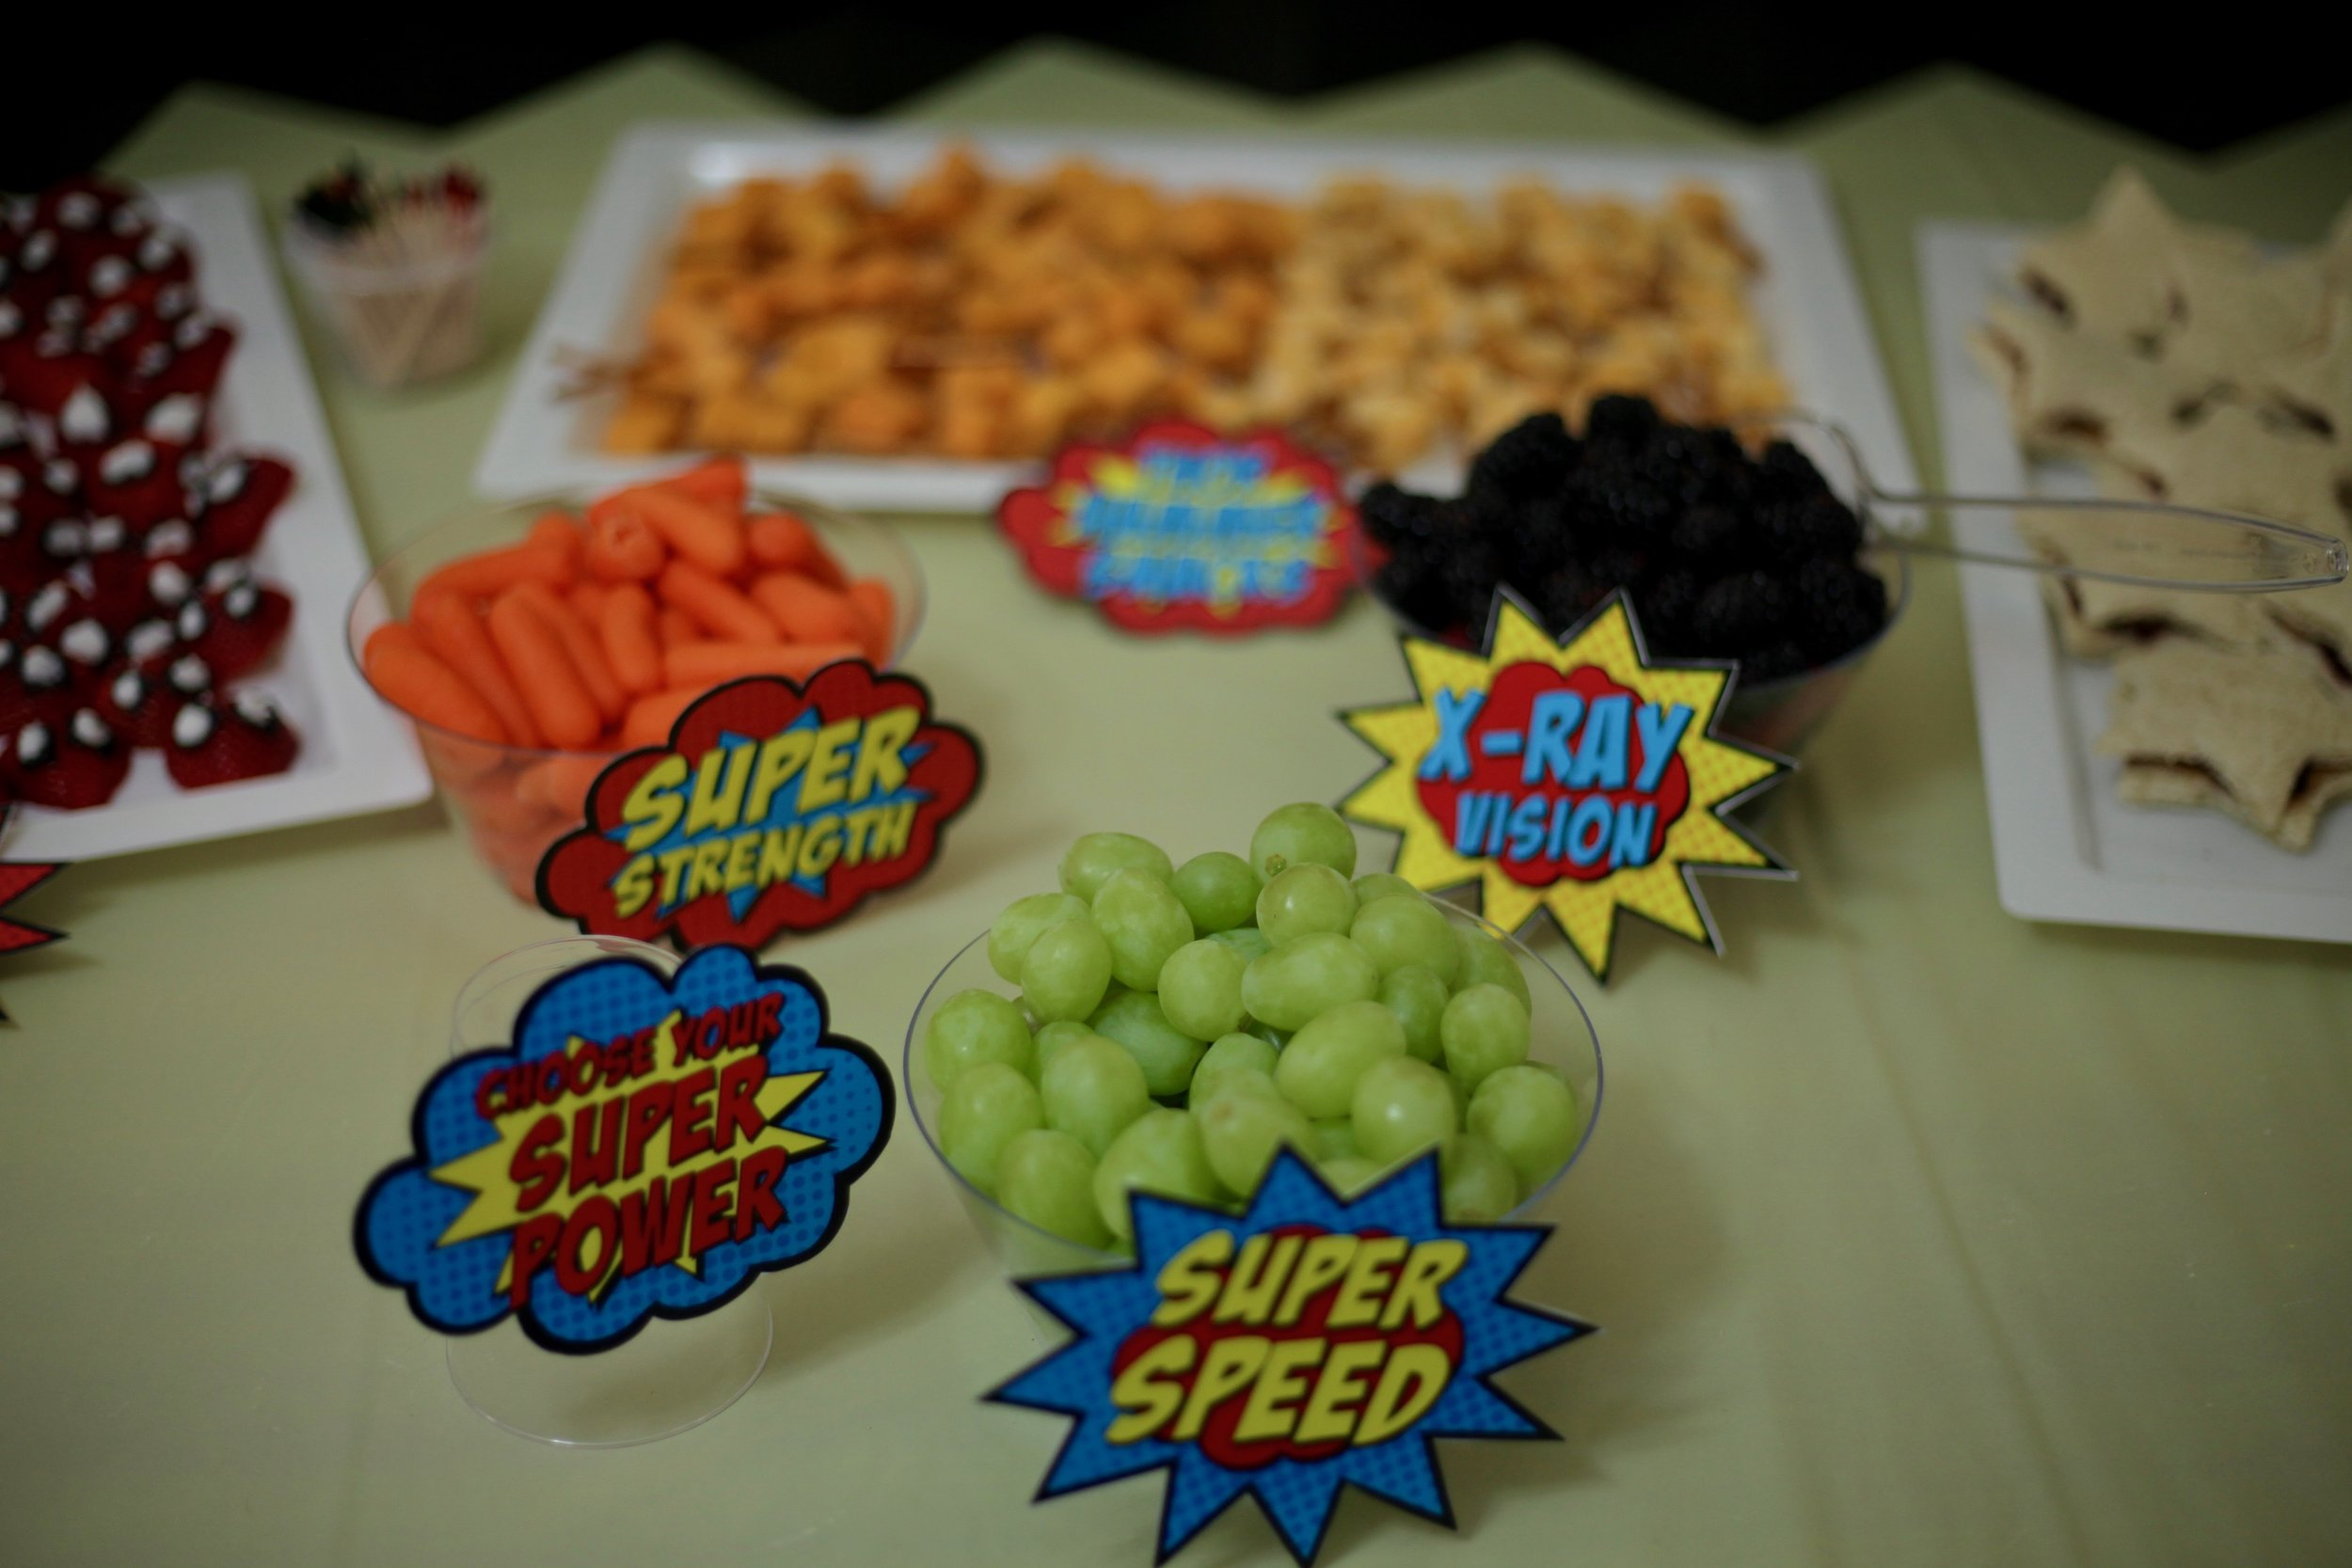 I added a 'choose your super power' sign and different super powers to fruit and veggie bowls.